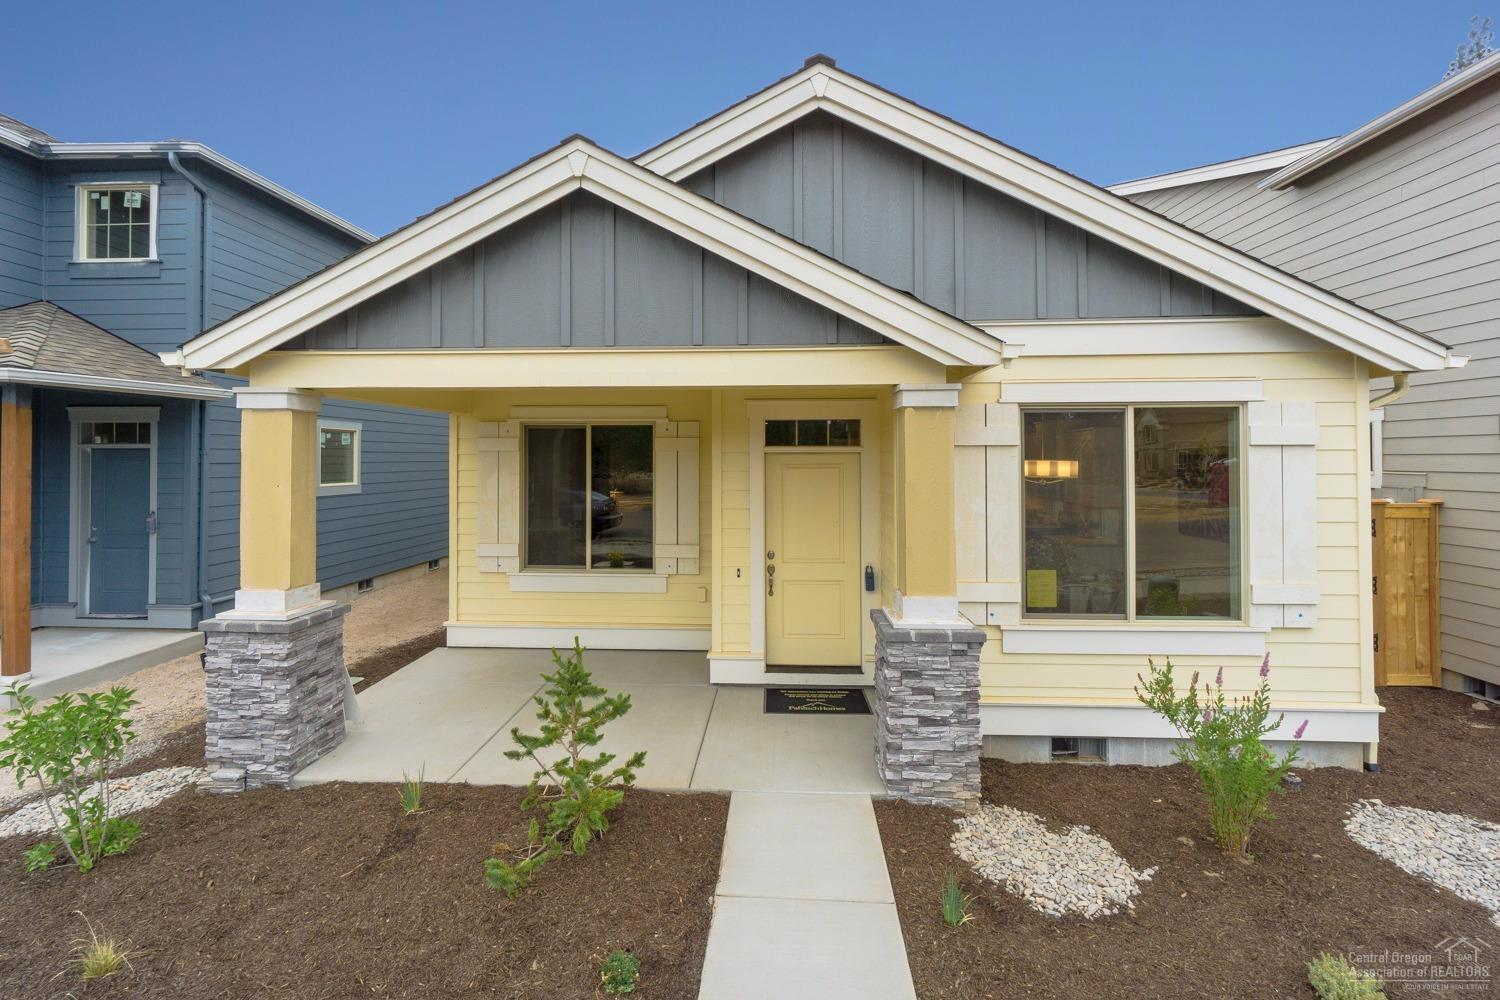 3 bed / 2 full, 1 partial baths Home in Bend for $399,950